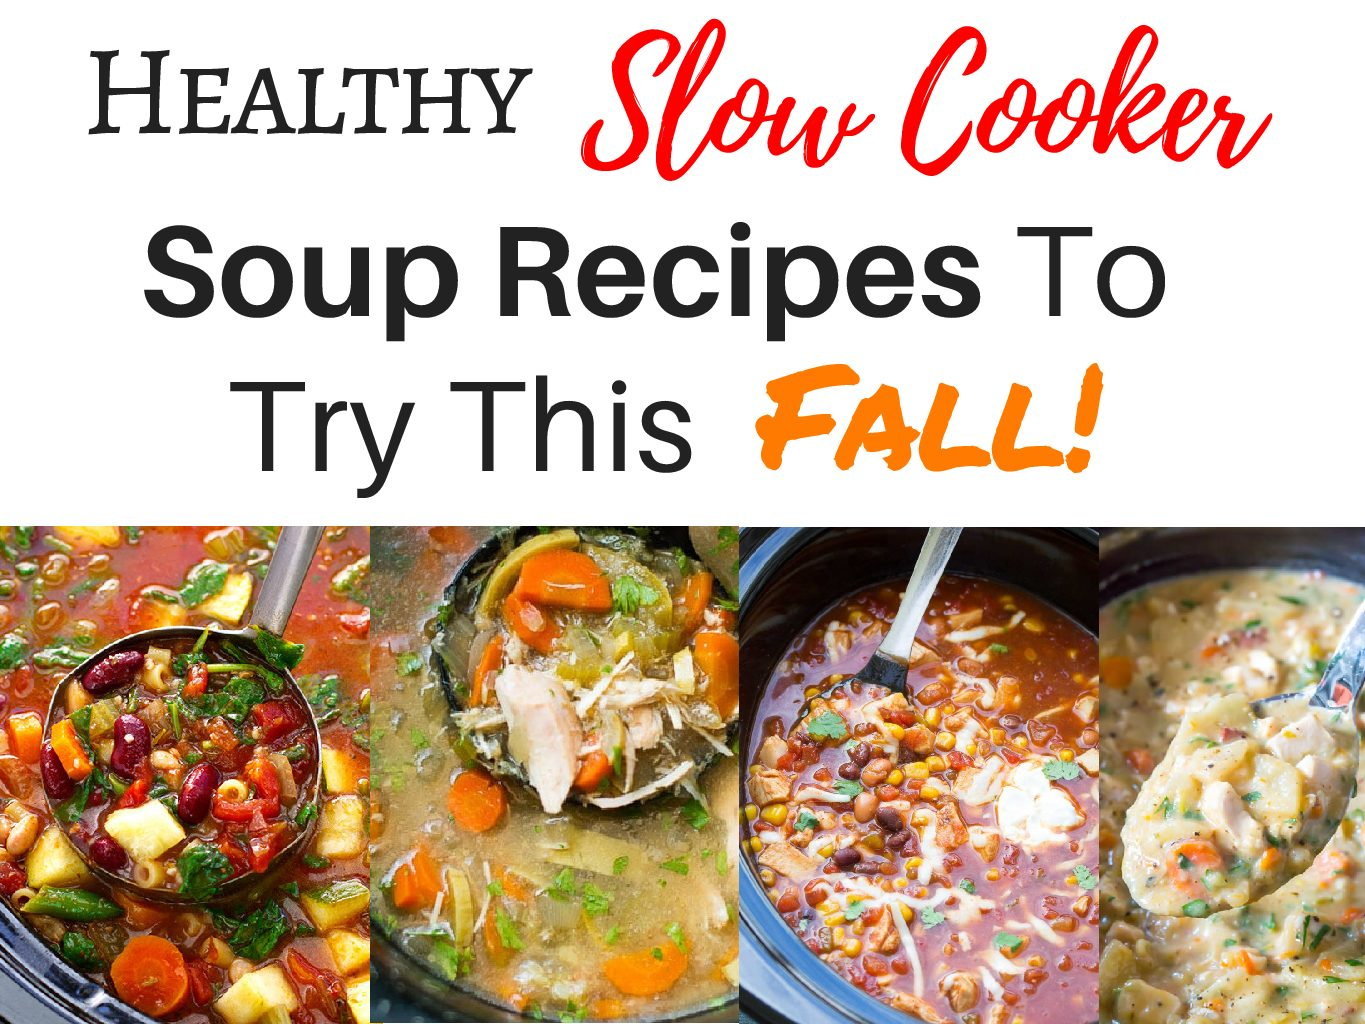 Slow cooker soup recipes that are easy and healthy for busy days youre going to absolutely love these recipes each is unique completely healthy and pretty simple forumfinder Image collections